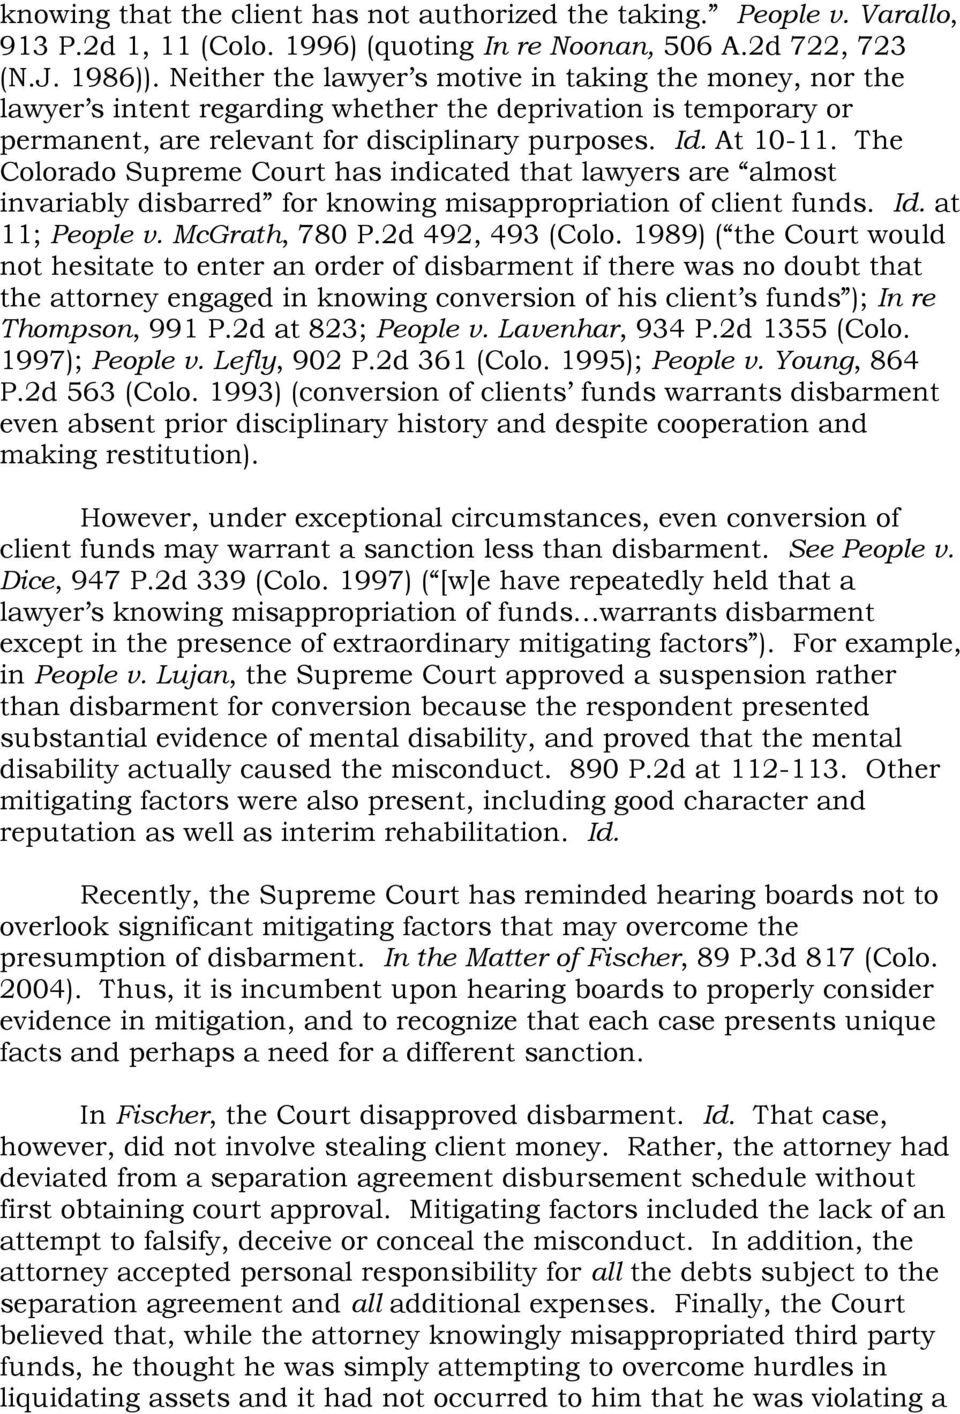 The Colorado Supreme Court has indicated that lawyers are almost invariably disbarred for knowing misappropriation of client funds. Id. at 11; People v. McGrath, 780 P.2d 492, 493 (Colo.